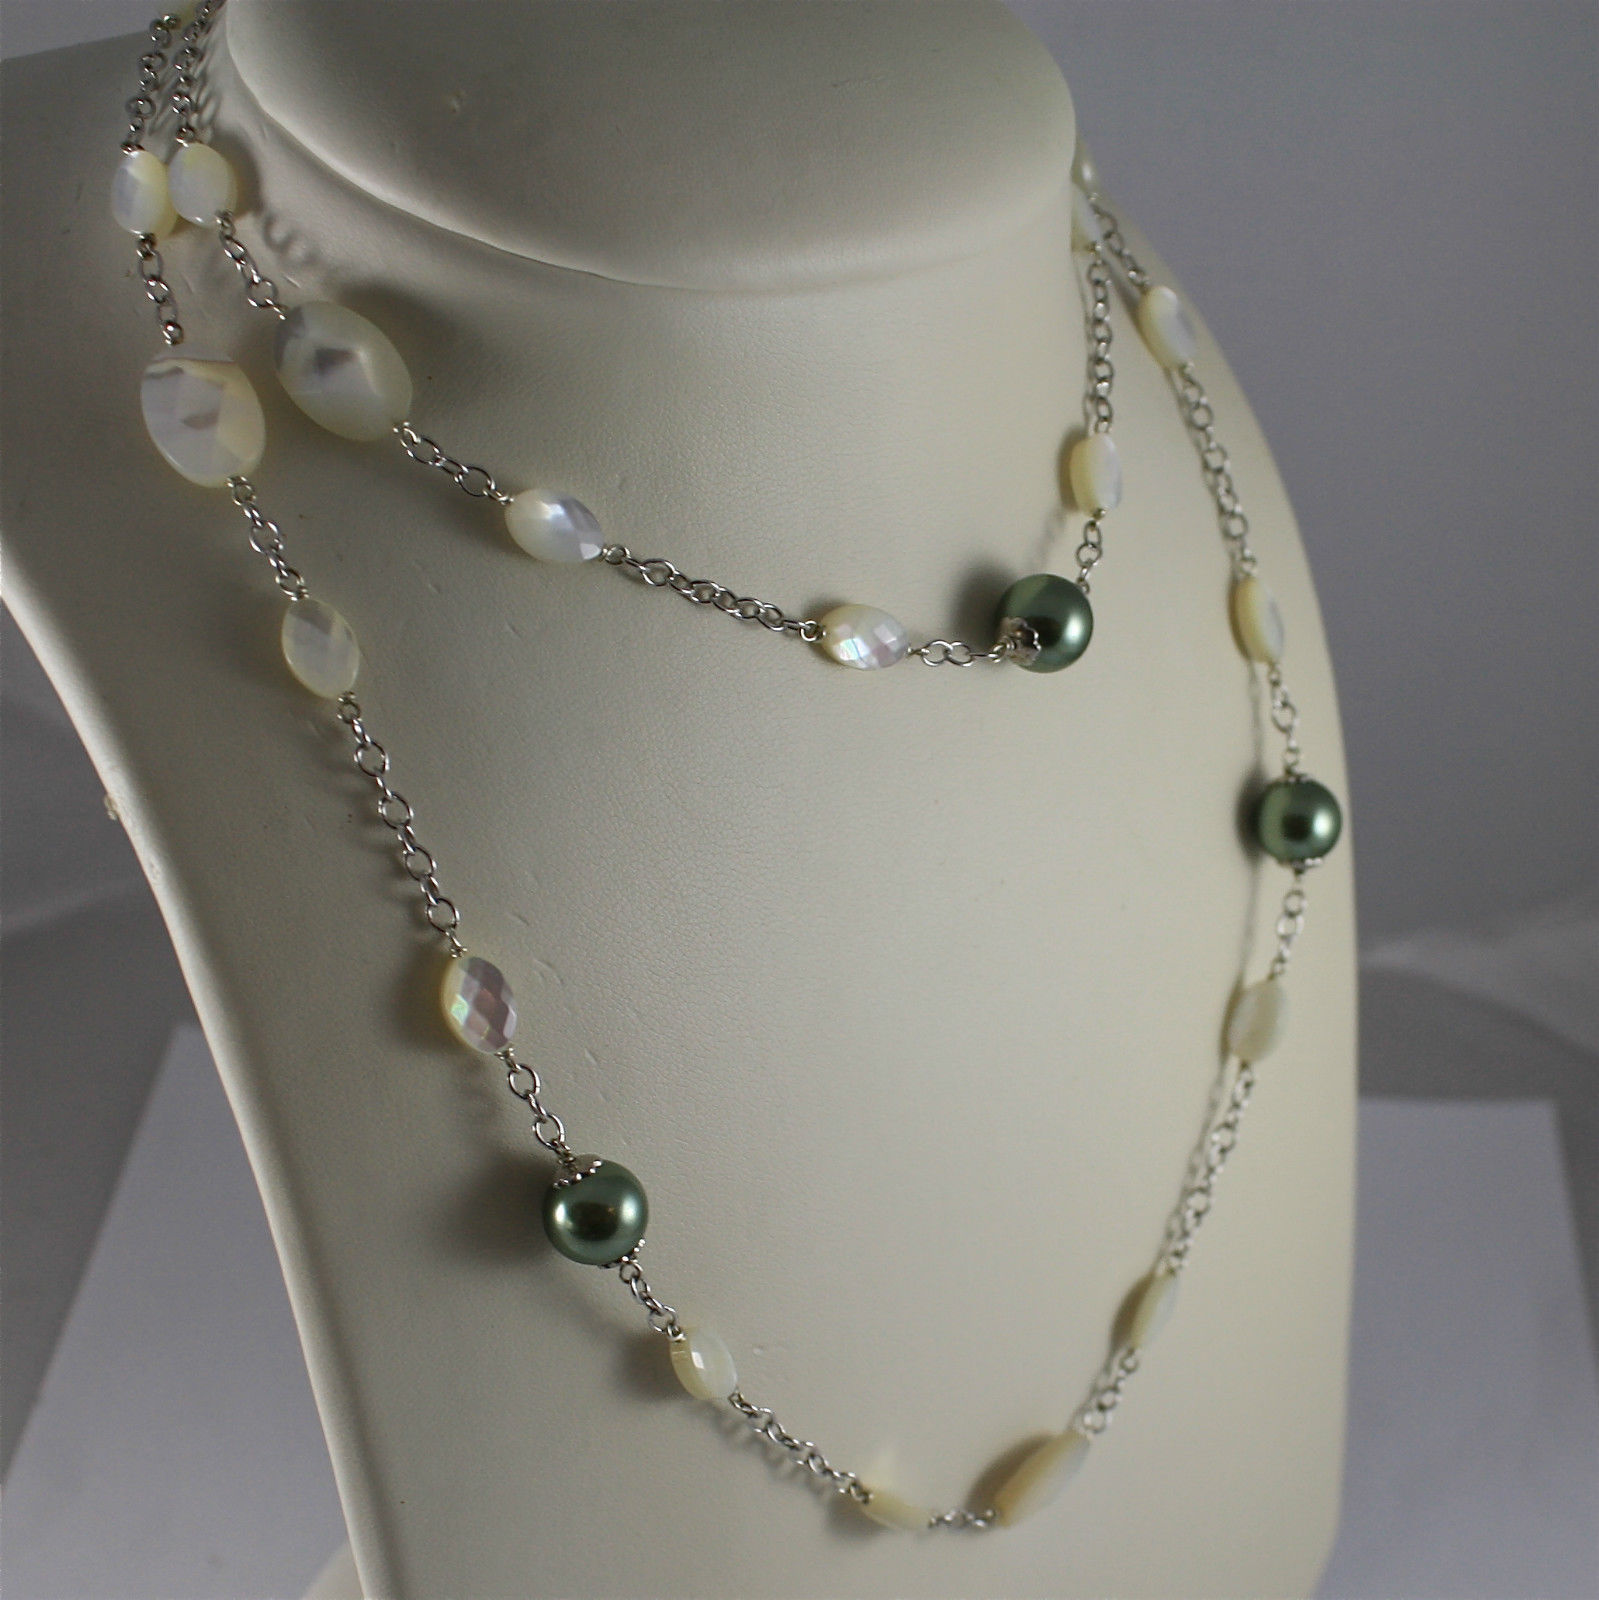 .925 RHODIUM SILVER NECKLACE, FACETED MOTHER-OF-PEARL, GREEN REBUILT PEARLS.